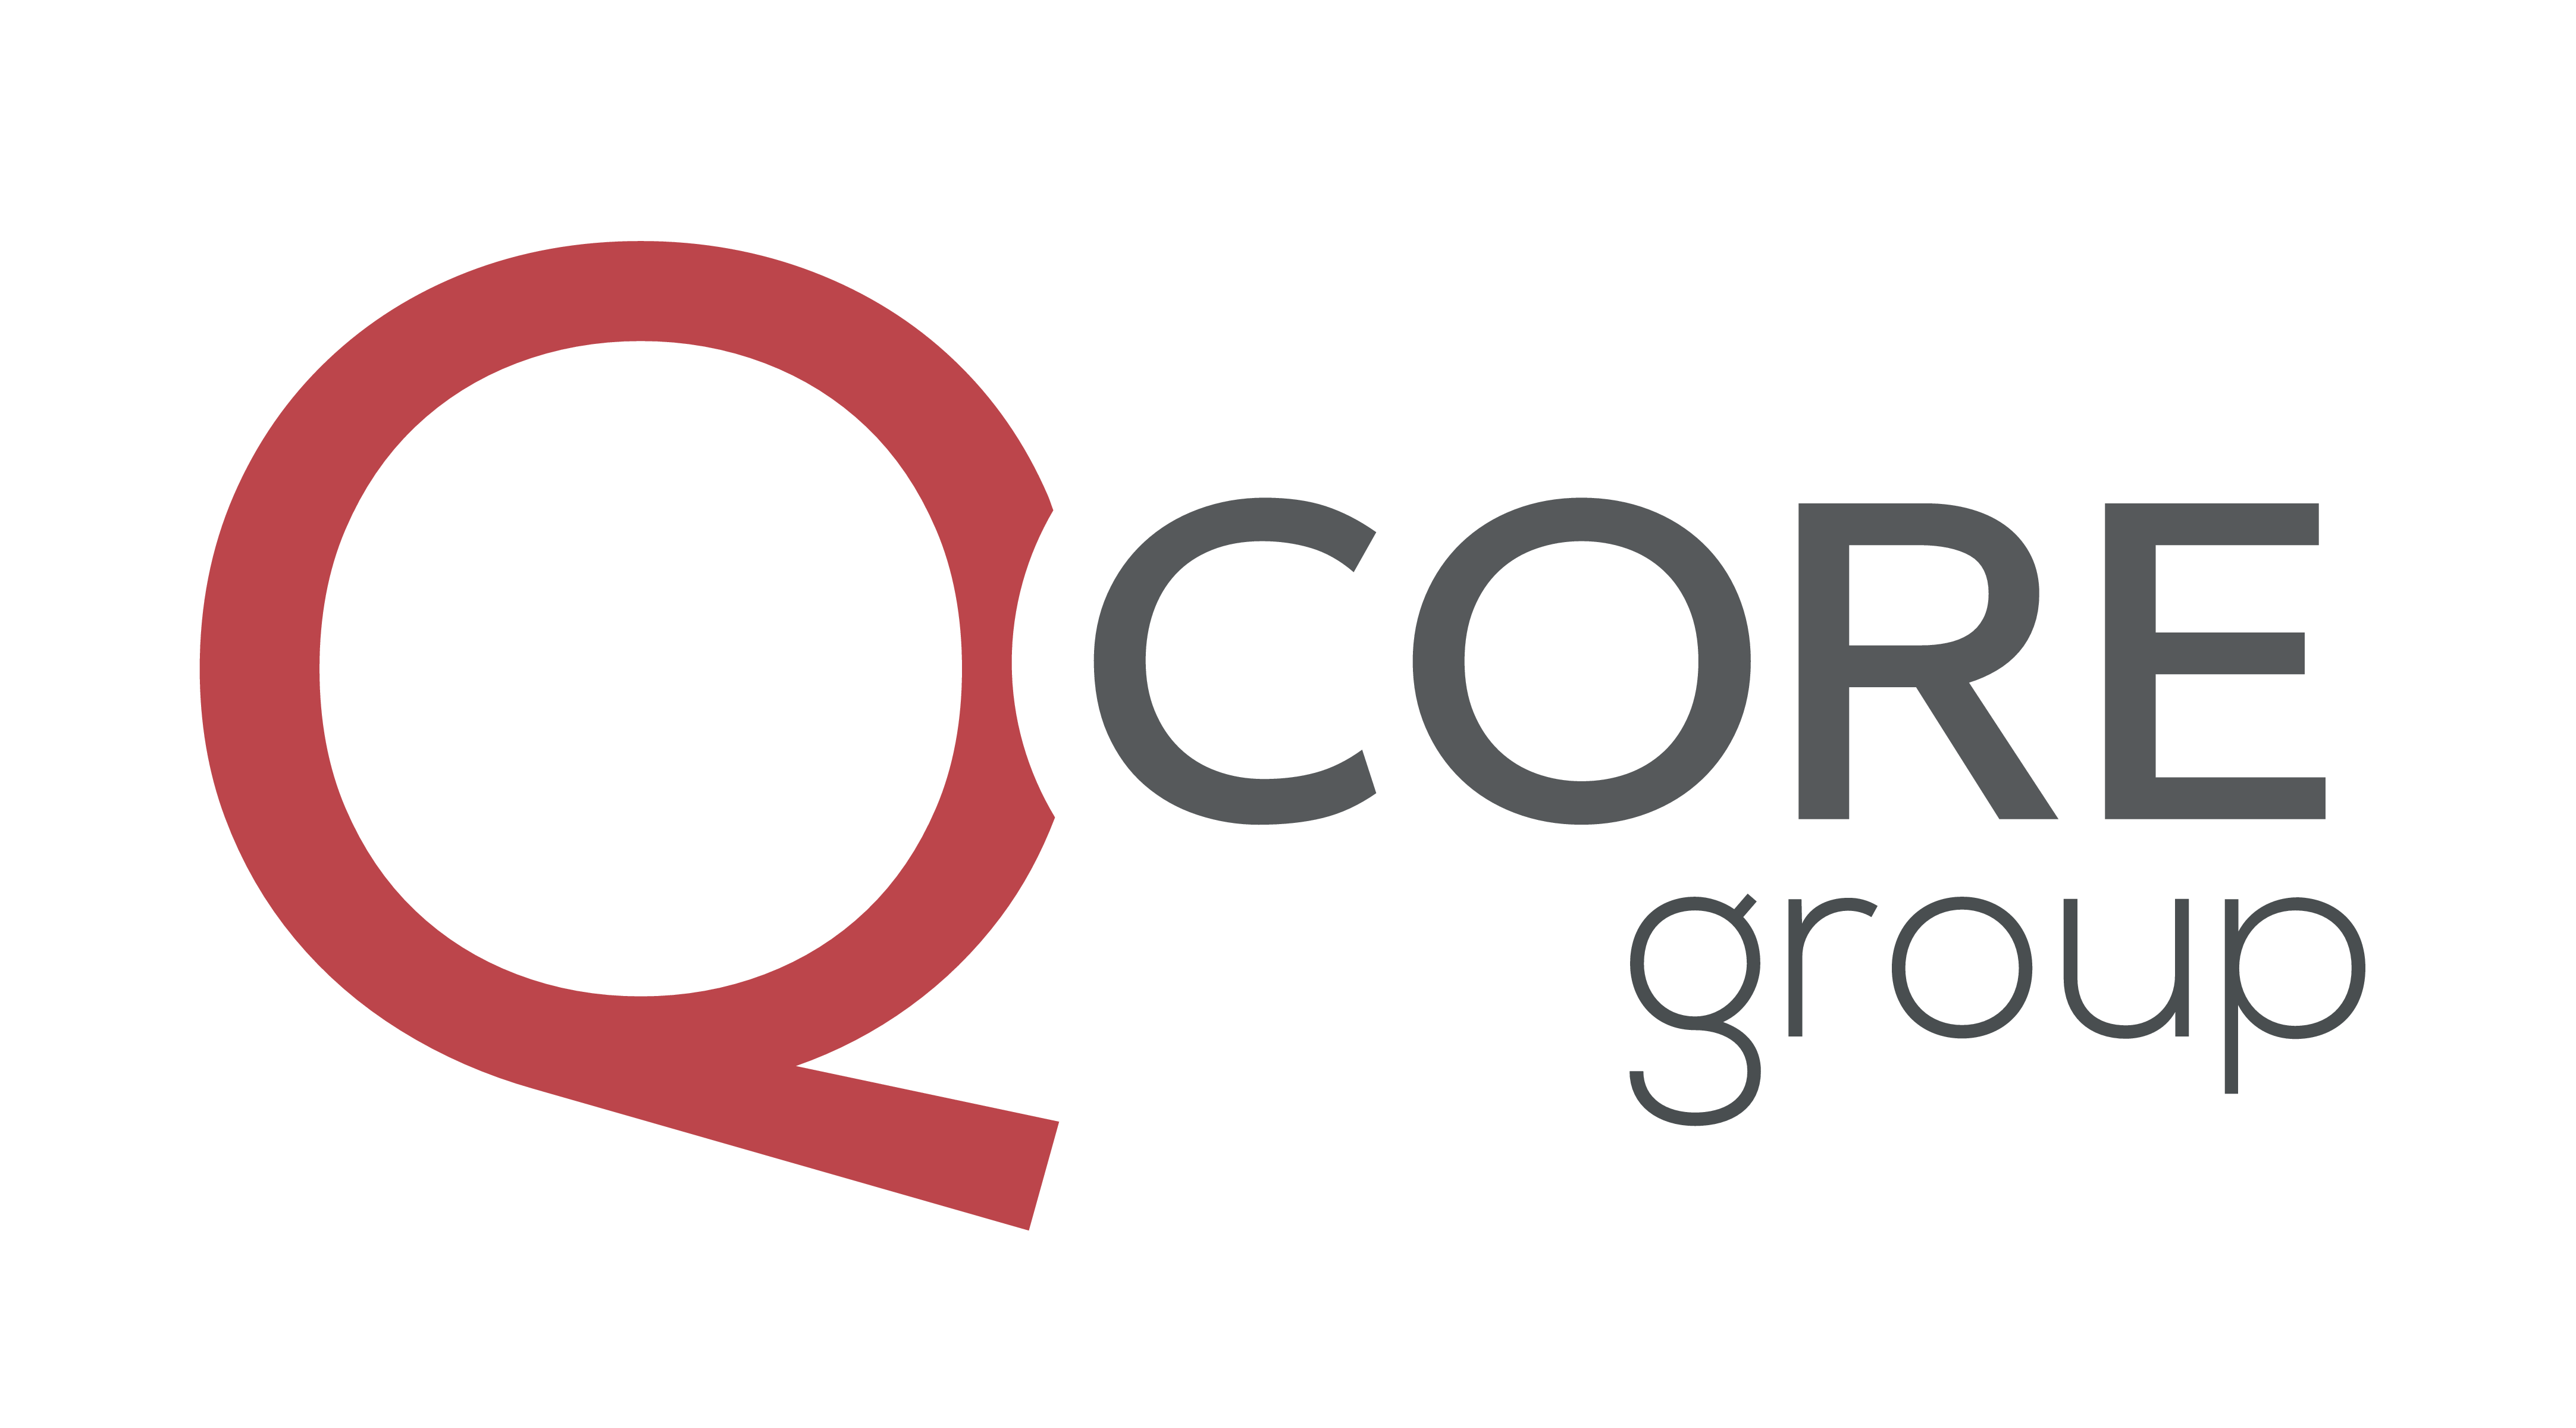 Qcore Red and gray logo